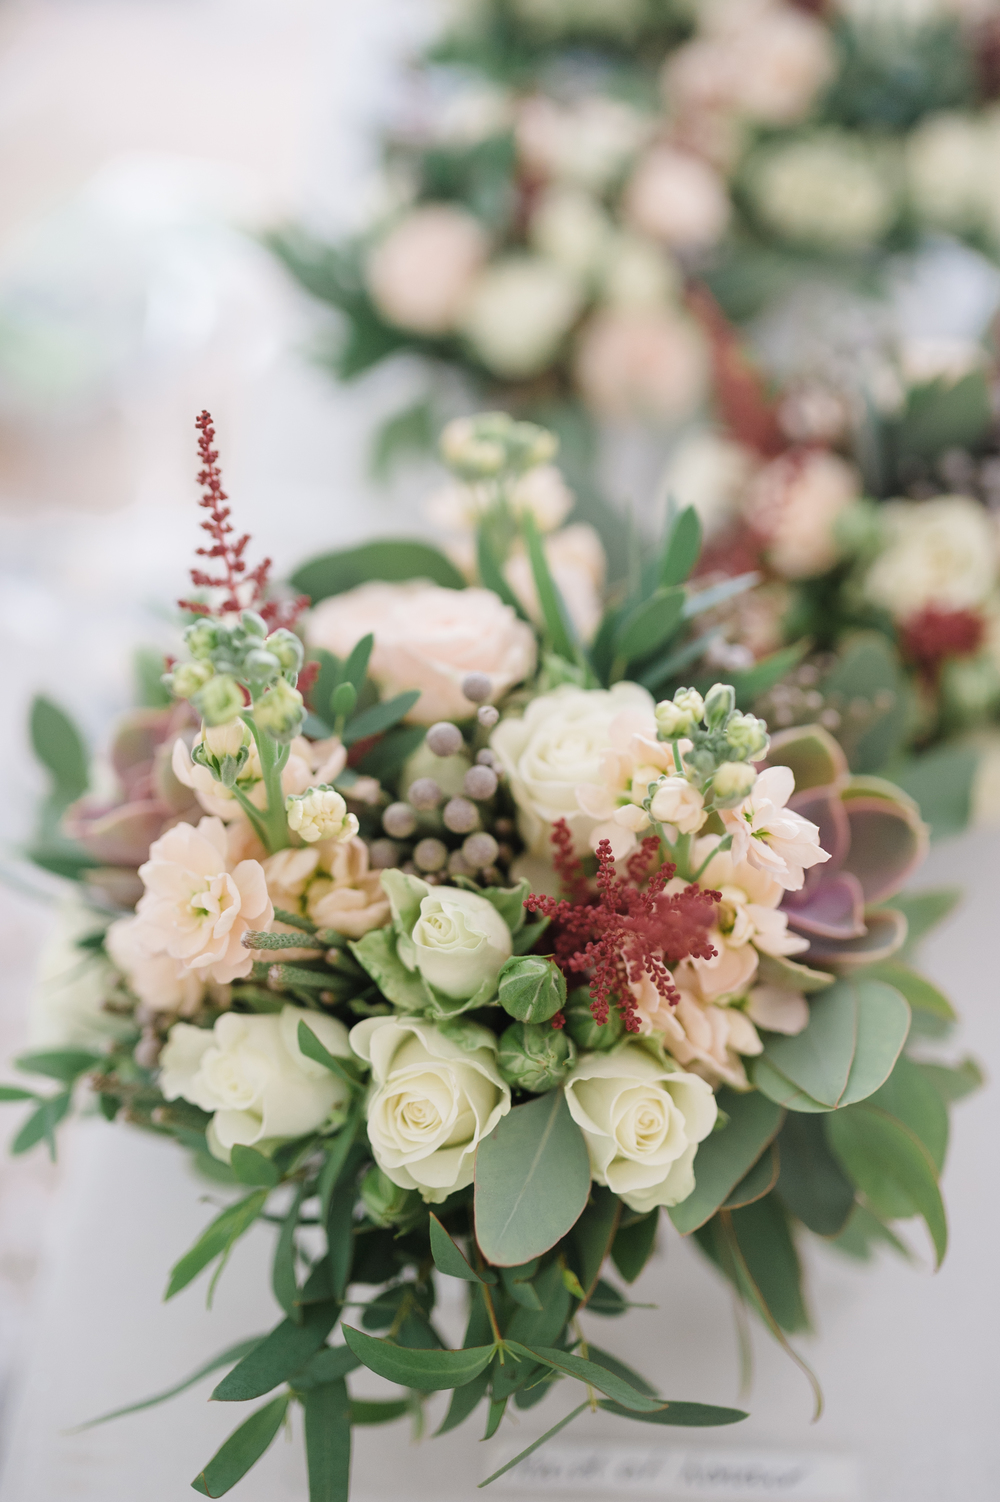 hannah-mcclune-photography-mill-house-hotel-swallowfield-rustic-wedding-burgundy-and-peach-wedding-2